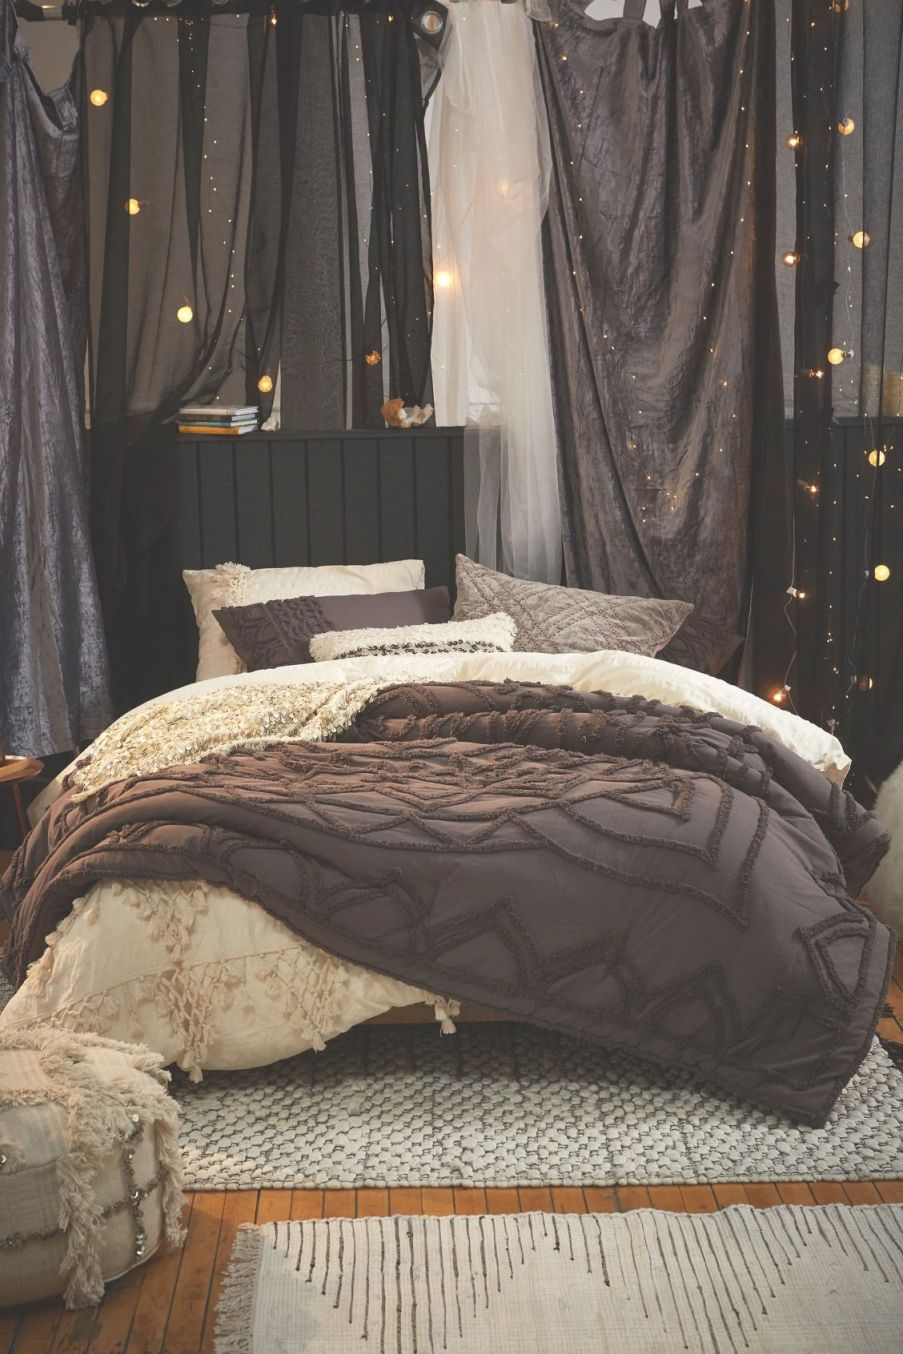 Pinterest: @ ↠Savana_Rollins↠ … | Home Decor Bedroom intended for Unique Romantic Bedroom Decorating Ideas Pinterest